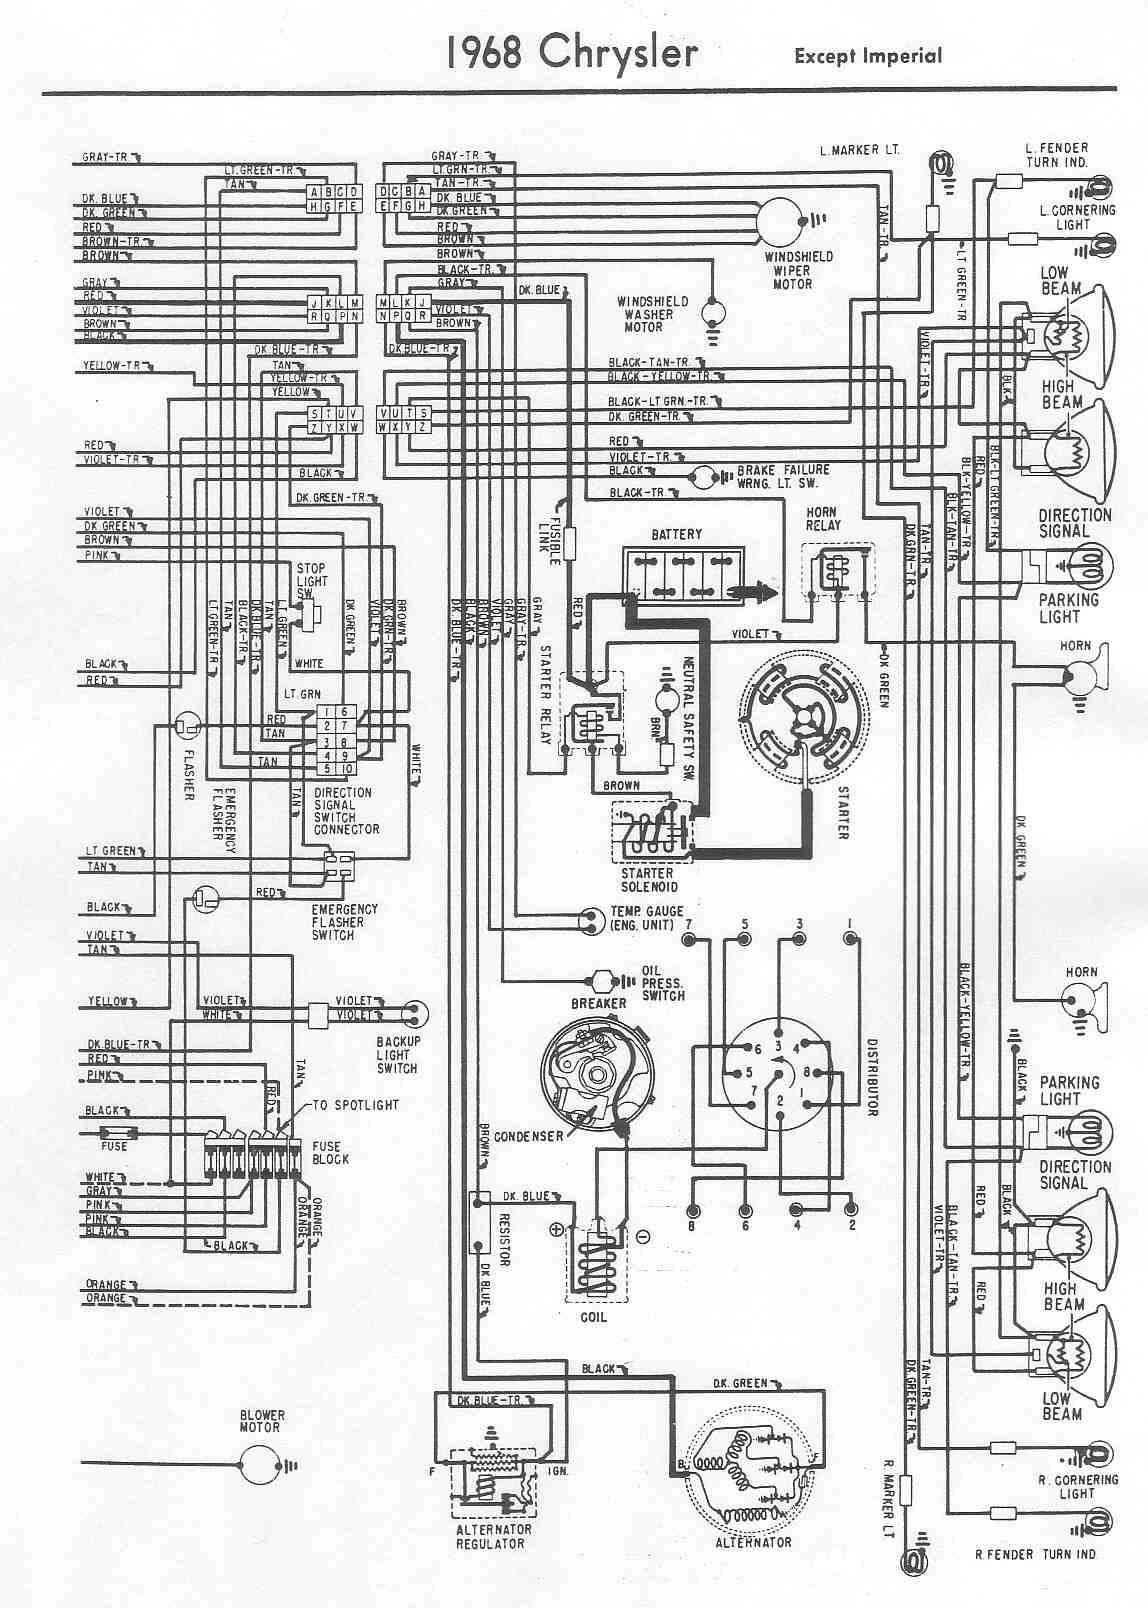 1969 Coronet Accessory Wiring Diagram Electrical Roadrunner 1965 Dodge Schematics Diagrams U2022 Rh Seniorlivinguniversity Co Gtx